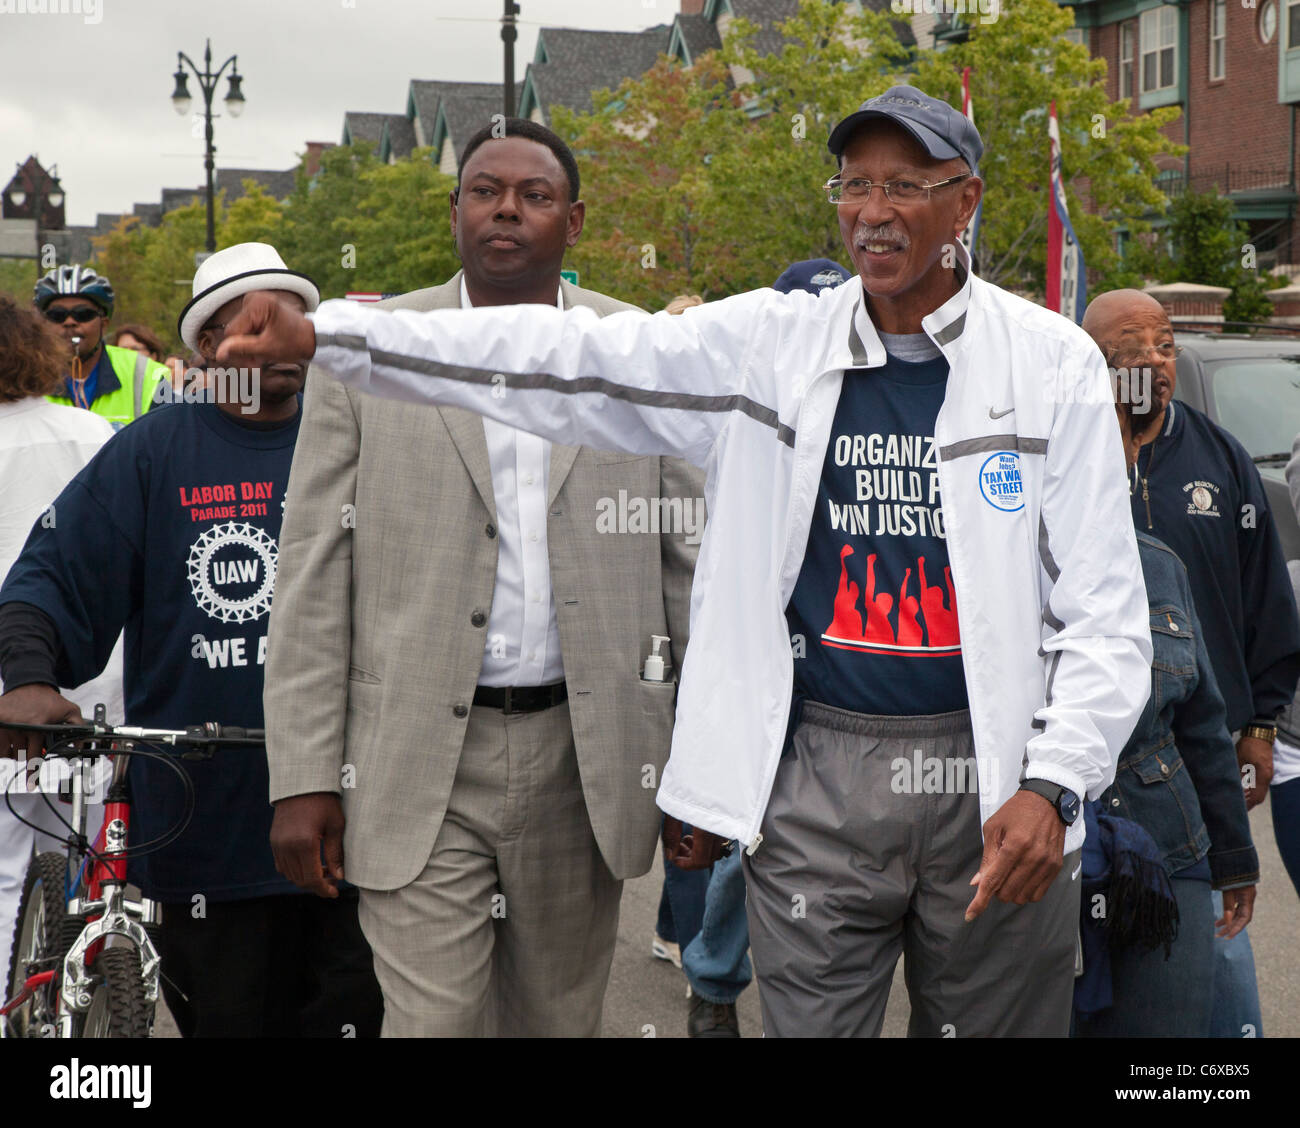 Detroit, Michigan - Detroit Mayor Dave Bing marches in the Labor Day parade. - Stock Image